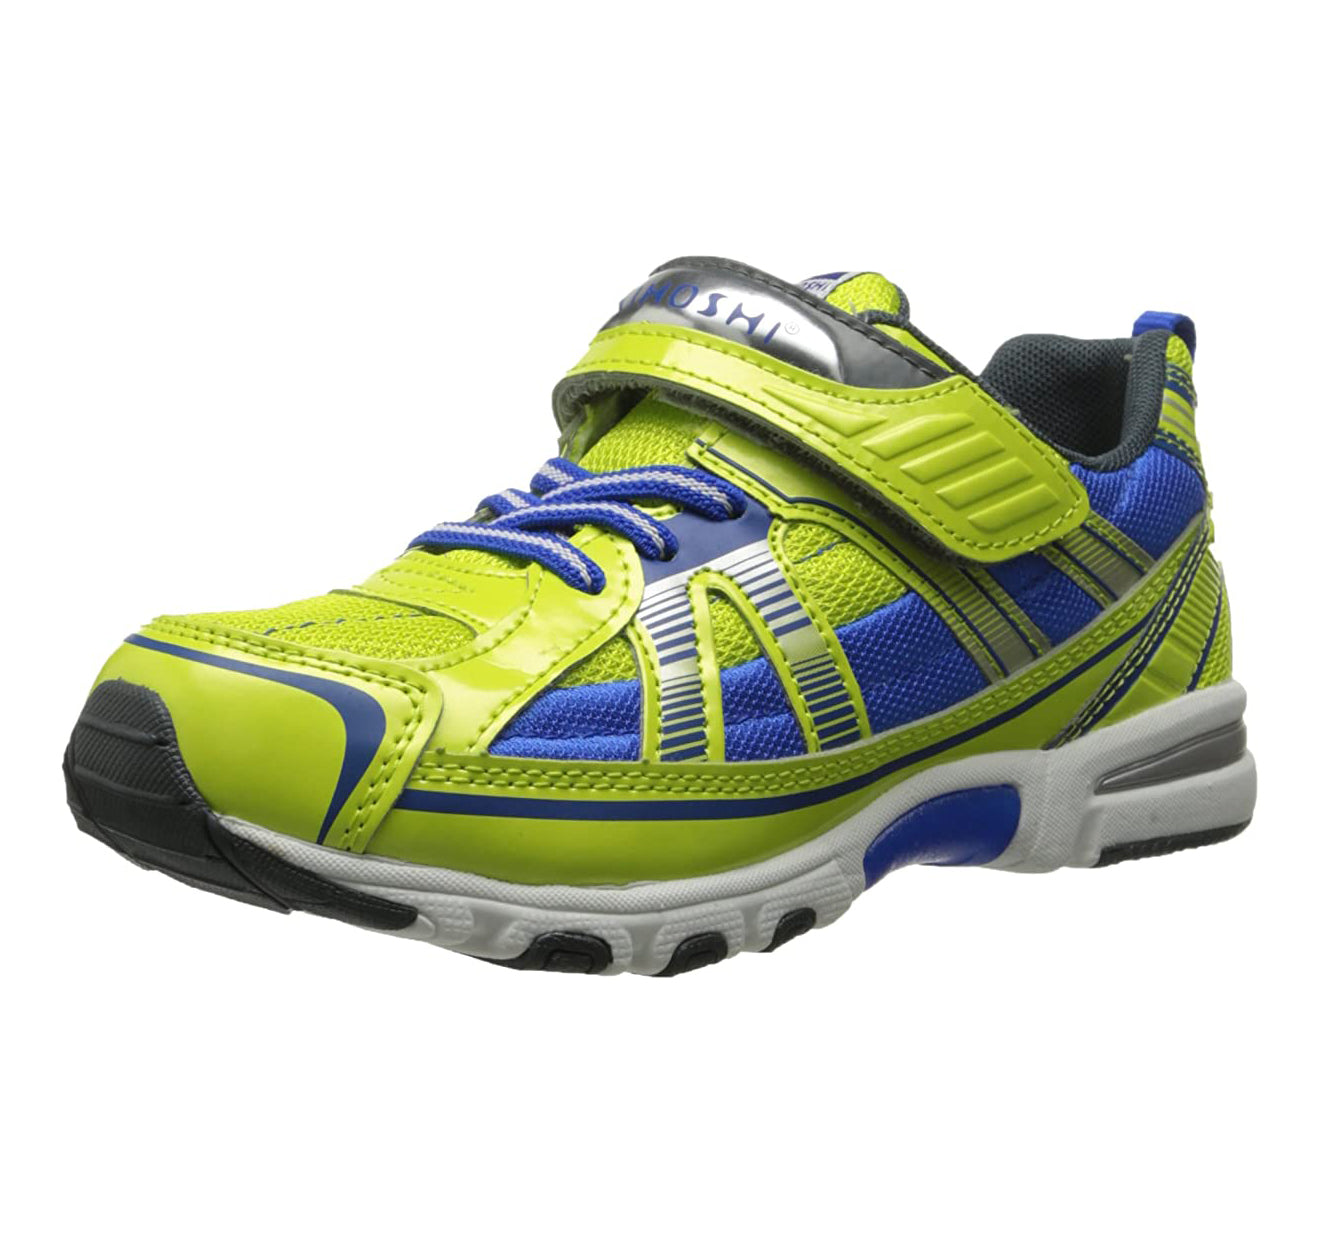 Child Tsukihoshi Storm Sneaker in Lime/Blue from the front view